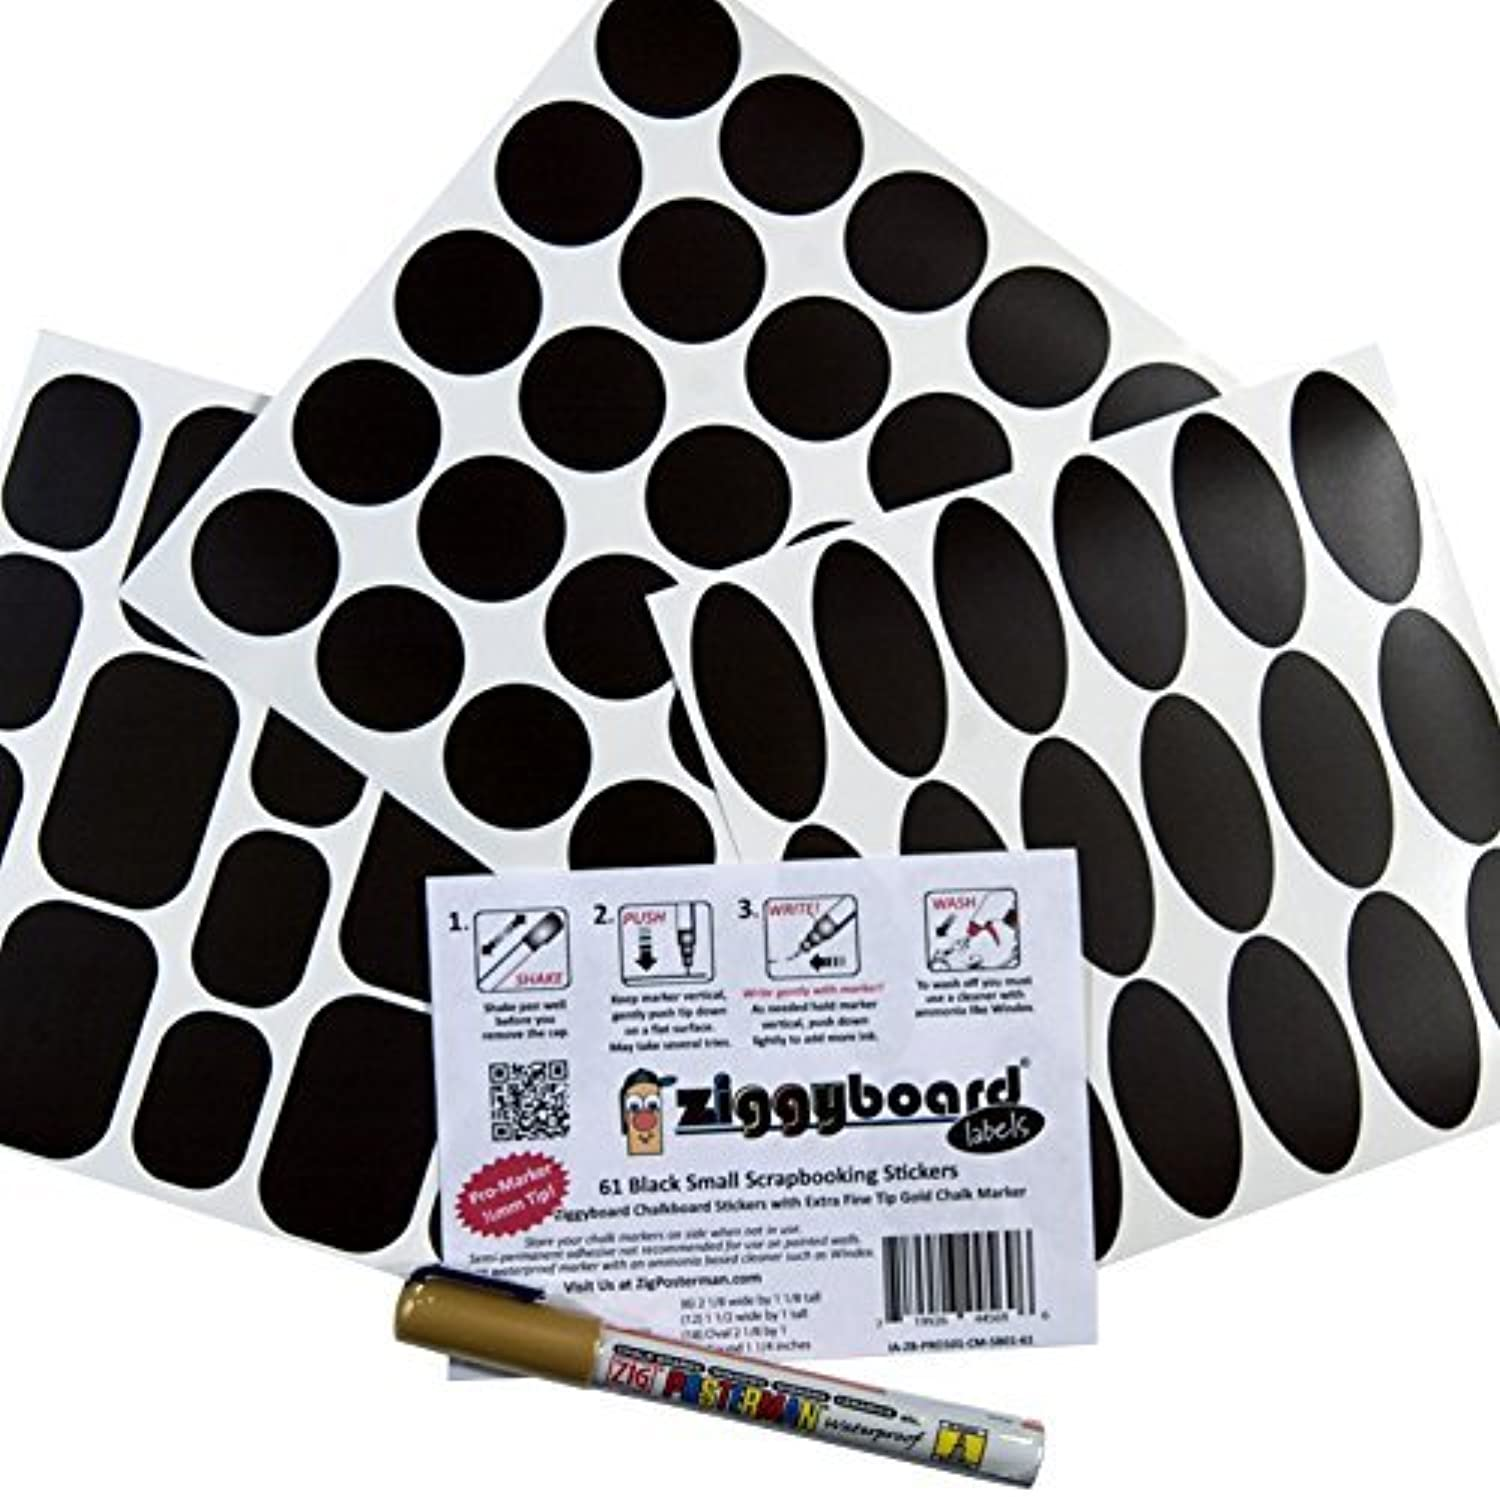 Ziggyboard Chalkboard Labels 61 Assorted Small with Extra Fine Tip Gold Chalk Marker for Crafting, Scrapbooking or Decorating by Ziggyboard B01KB845D8     | Vorzügliche Verarbeitung